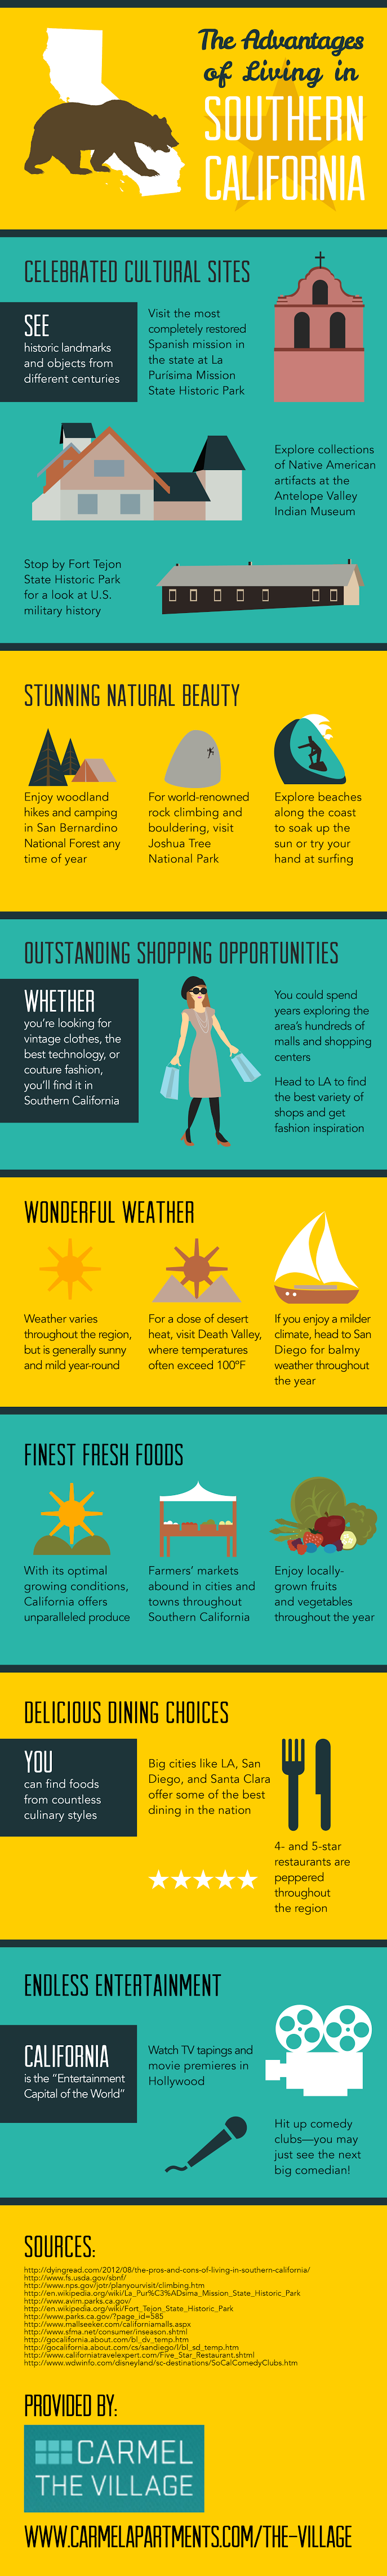 The Advantages of Living in Southern California | Visual ly